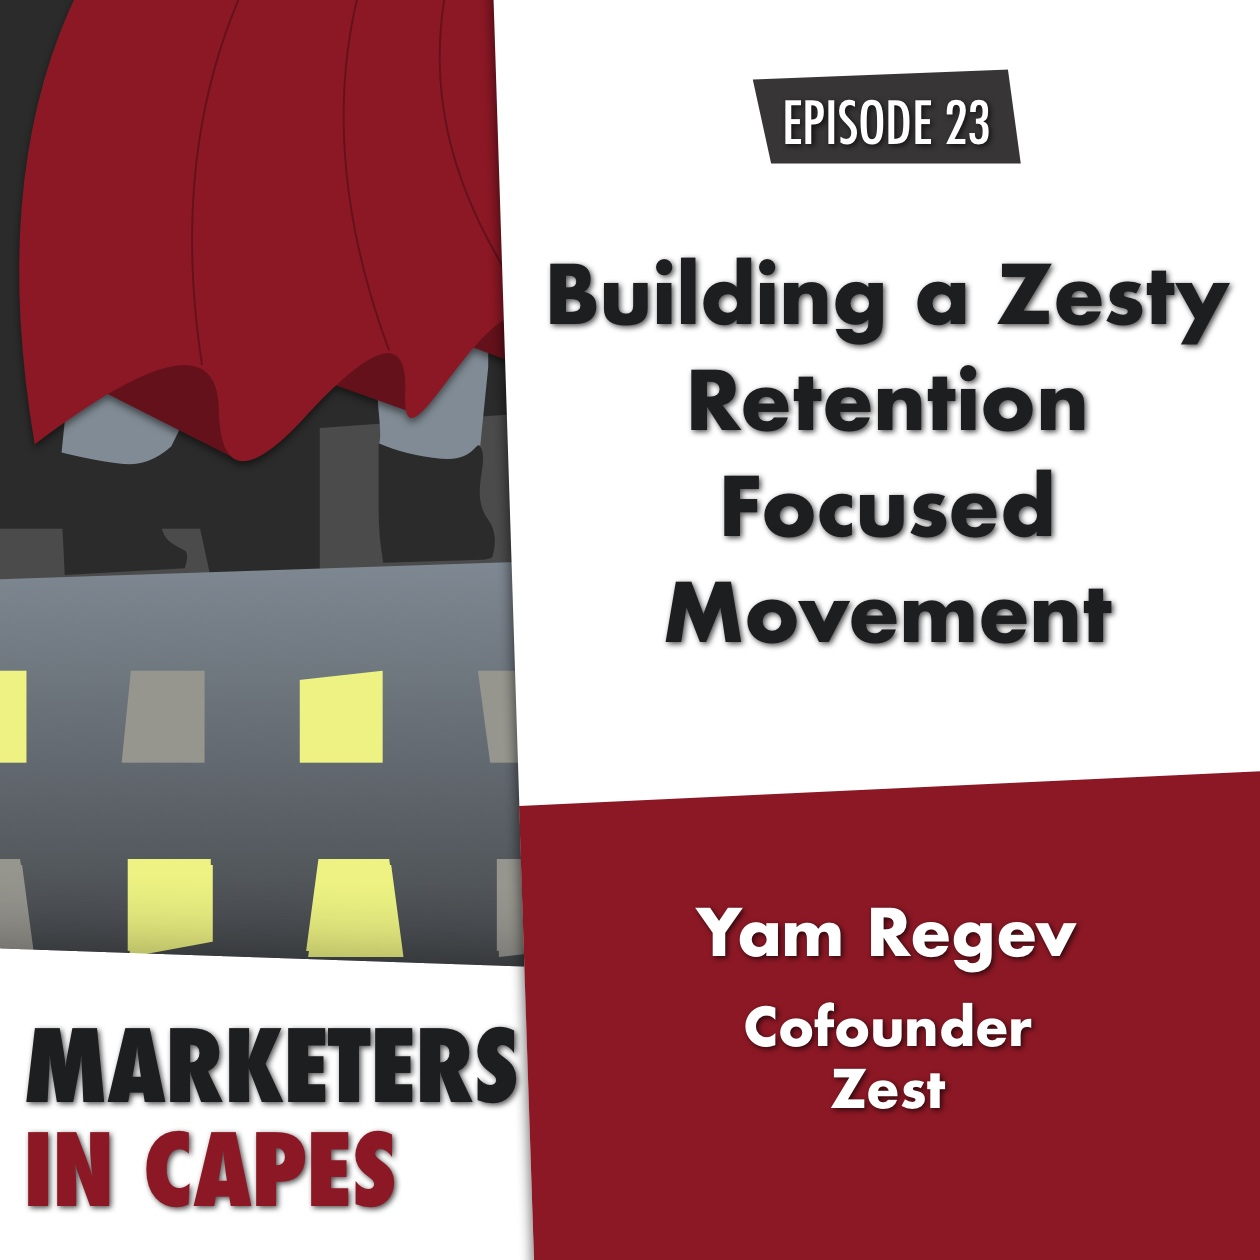 Building a Zesty, Retention-Focused Movement with Yam Regev, Cofounder of Zest